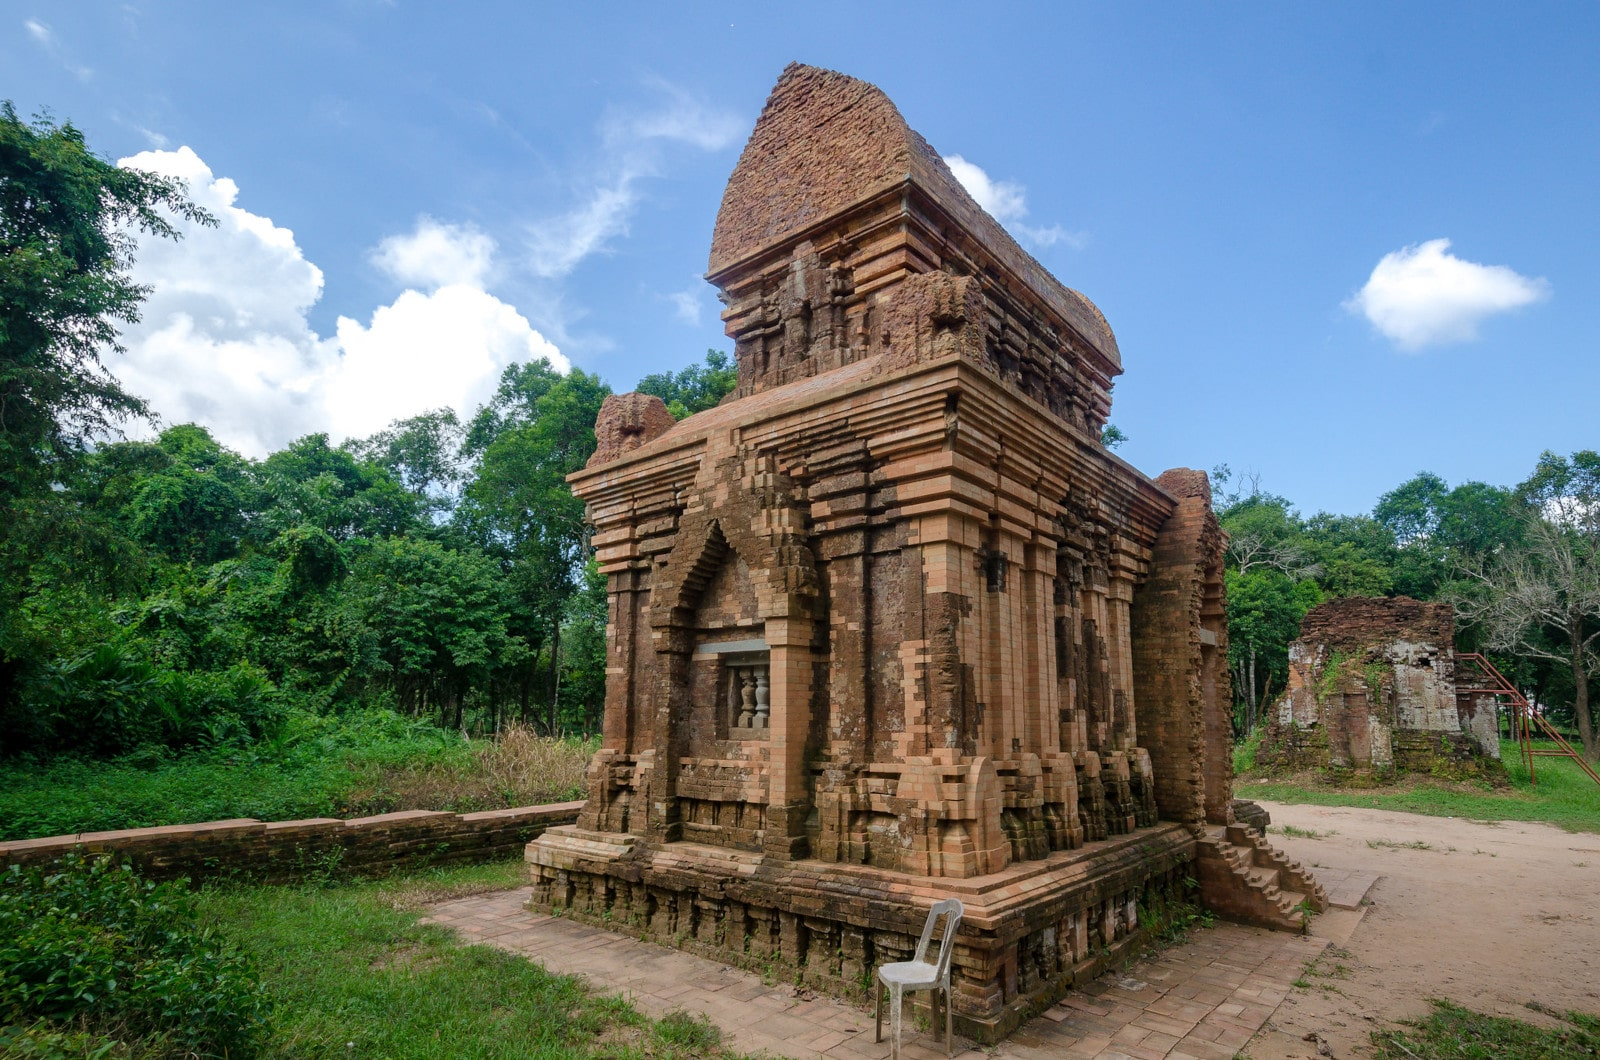 Image of a ruined structure at My Son Sanctuary in Hoi An, Vietnam